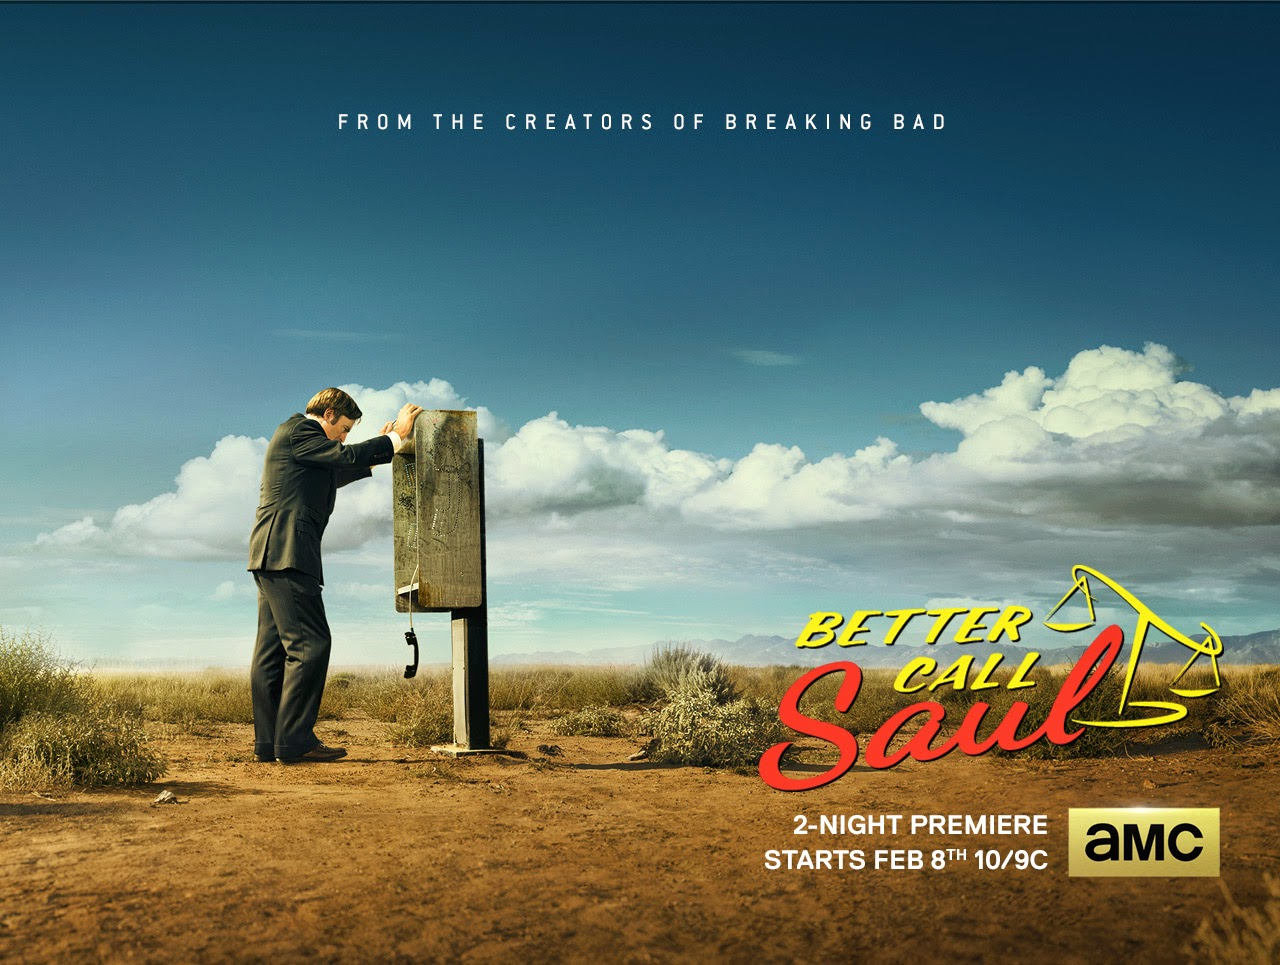 bs.to better call saul